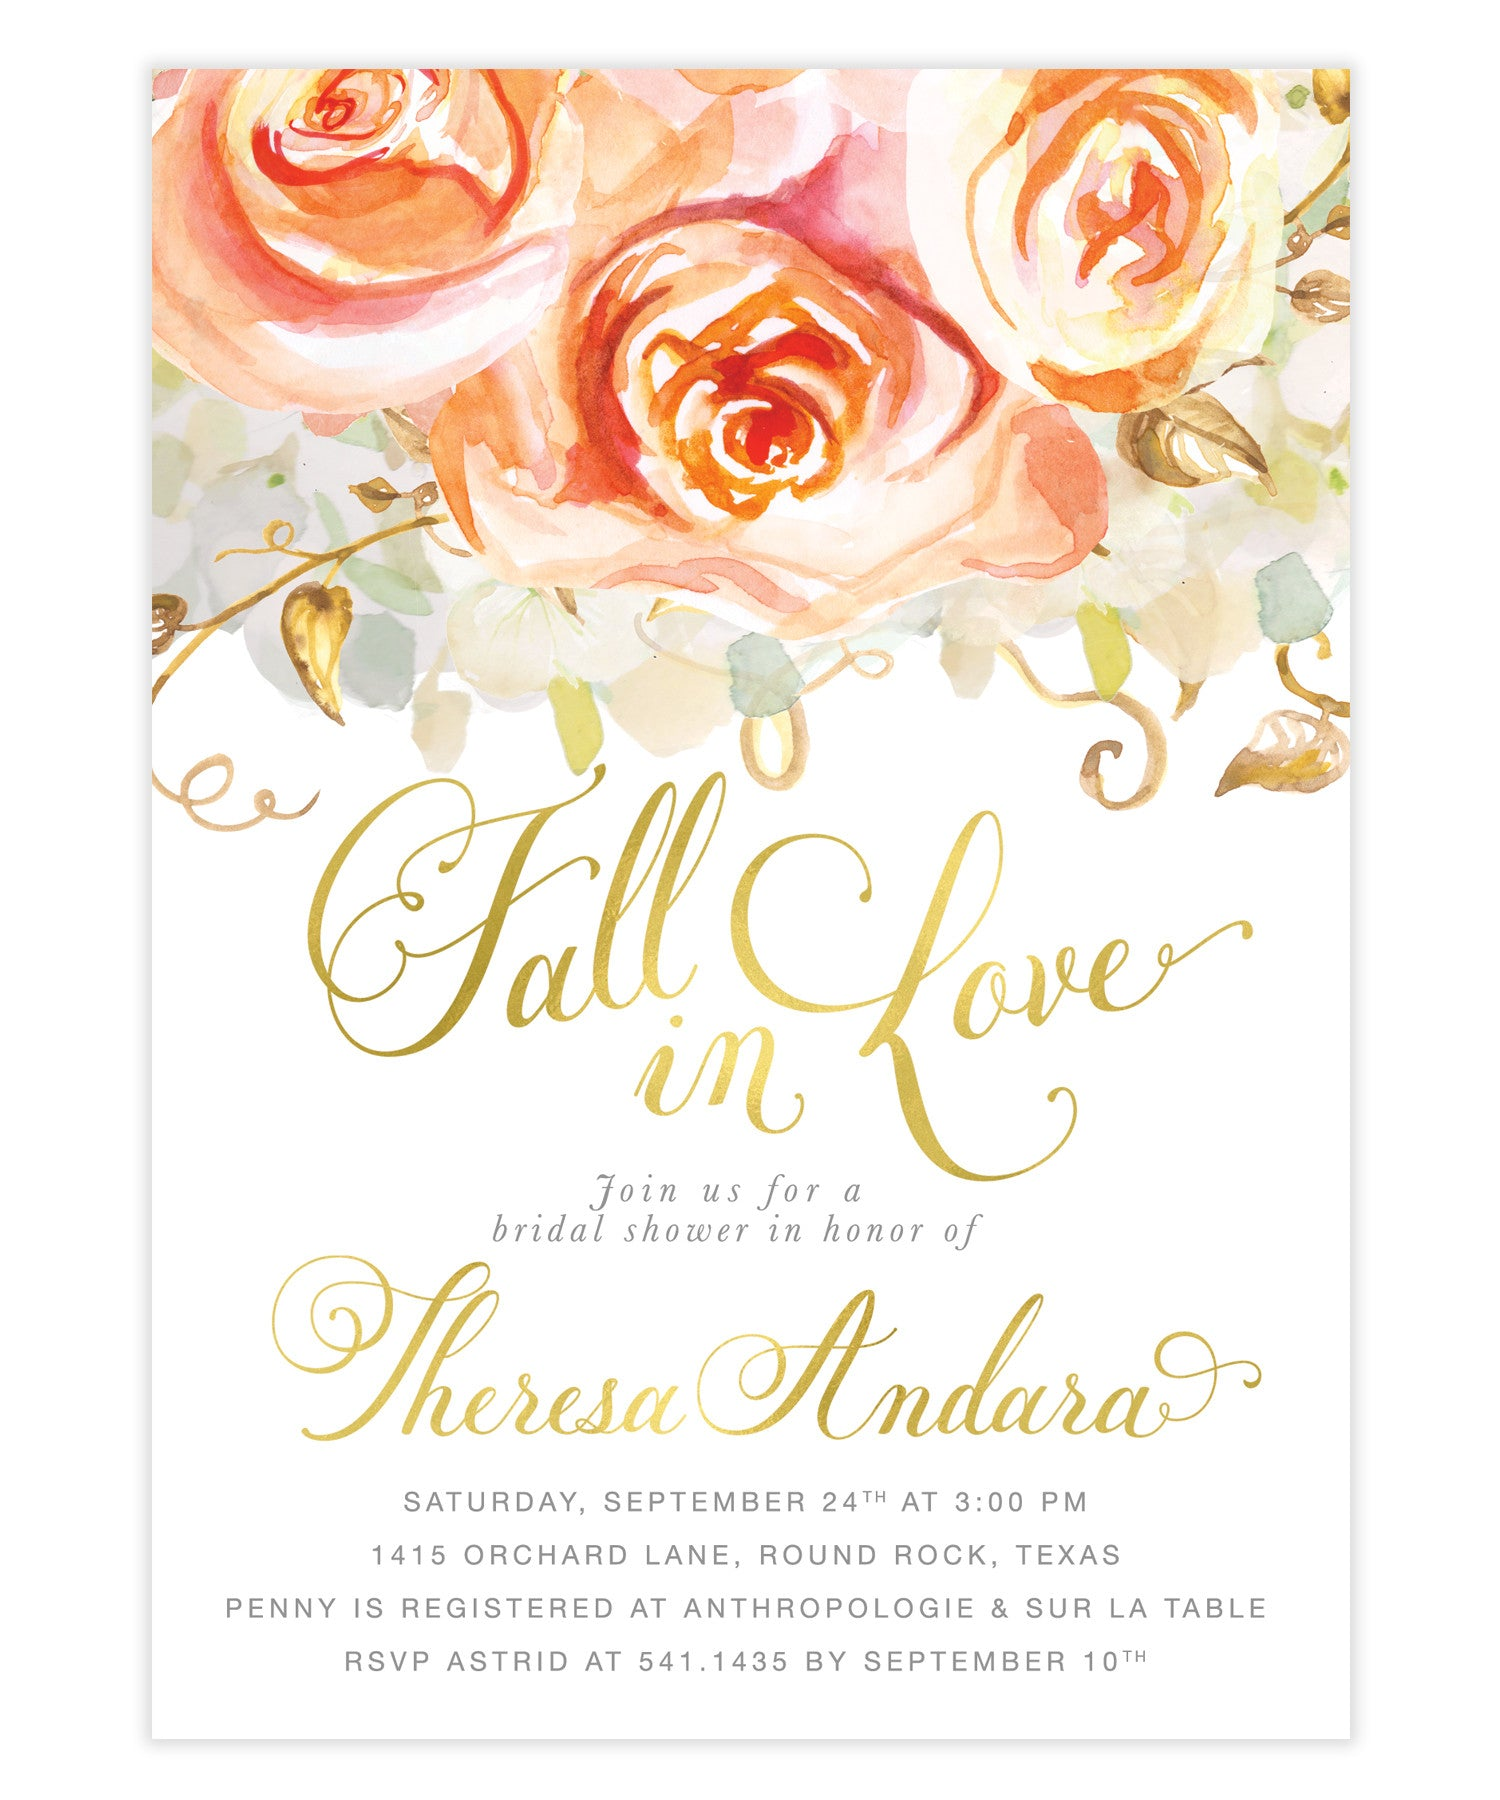 fall in love peach roses hydrangeas bridal shower invitation